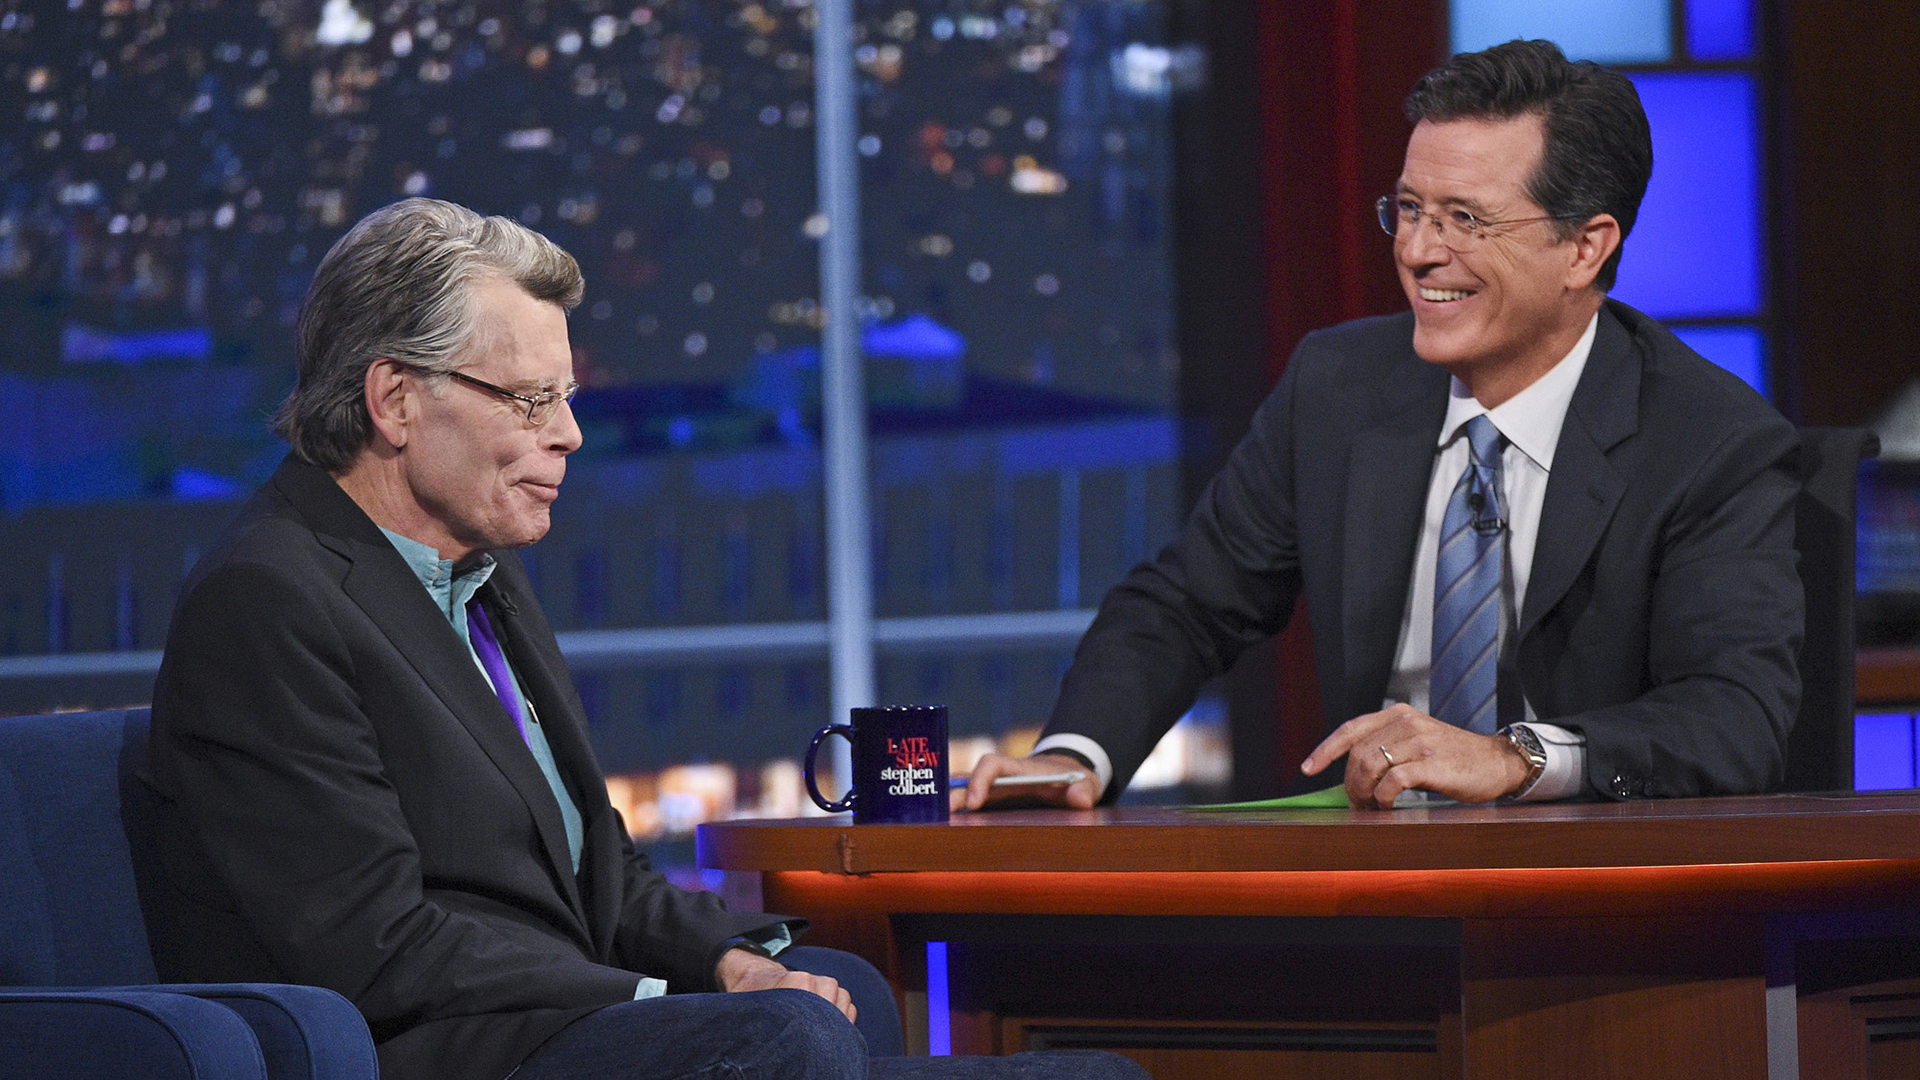 Stephen King and Stephen Colbert